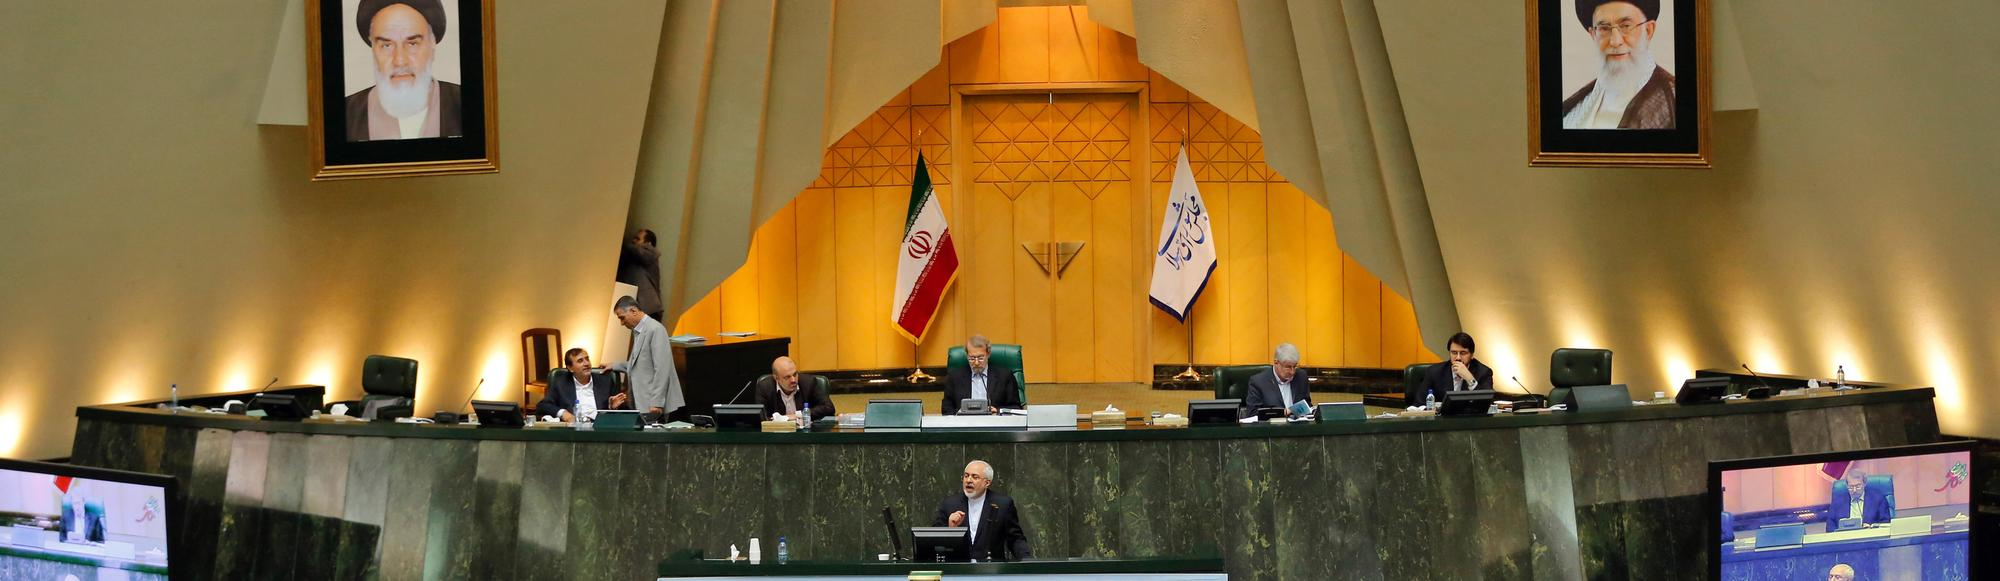 Iranian Parliament Reviews Nuclear Deal as North Korea Vows to Keep 'Nukes'